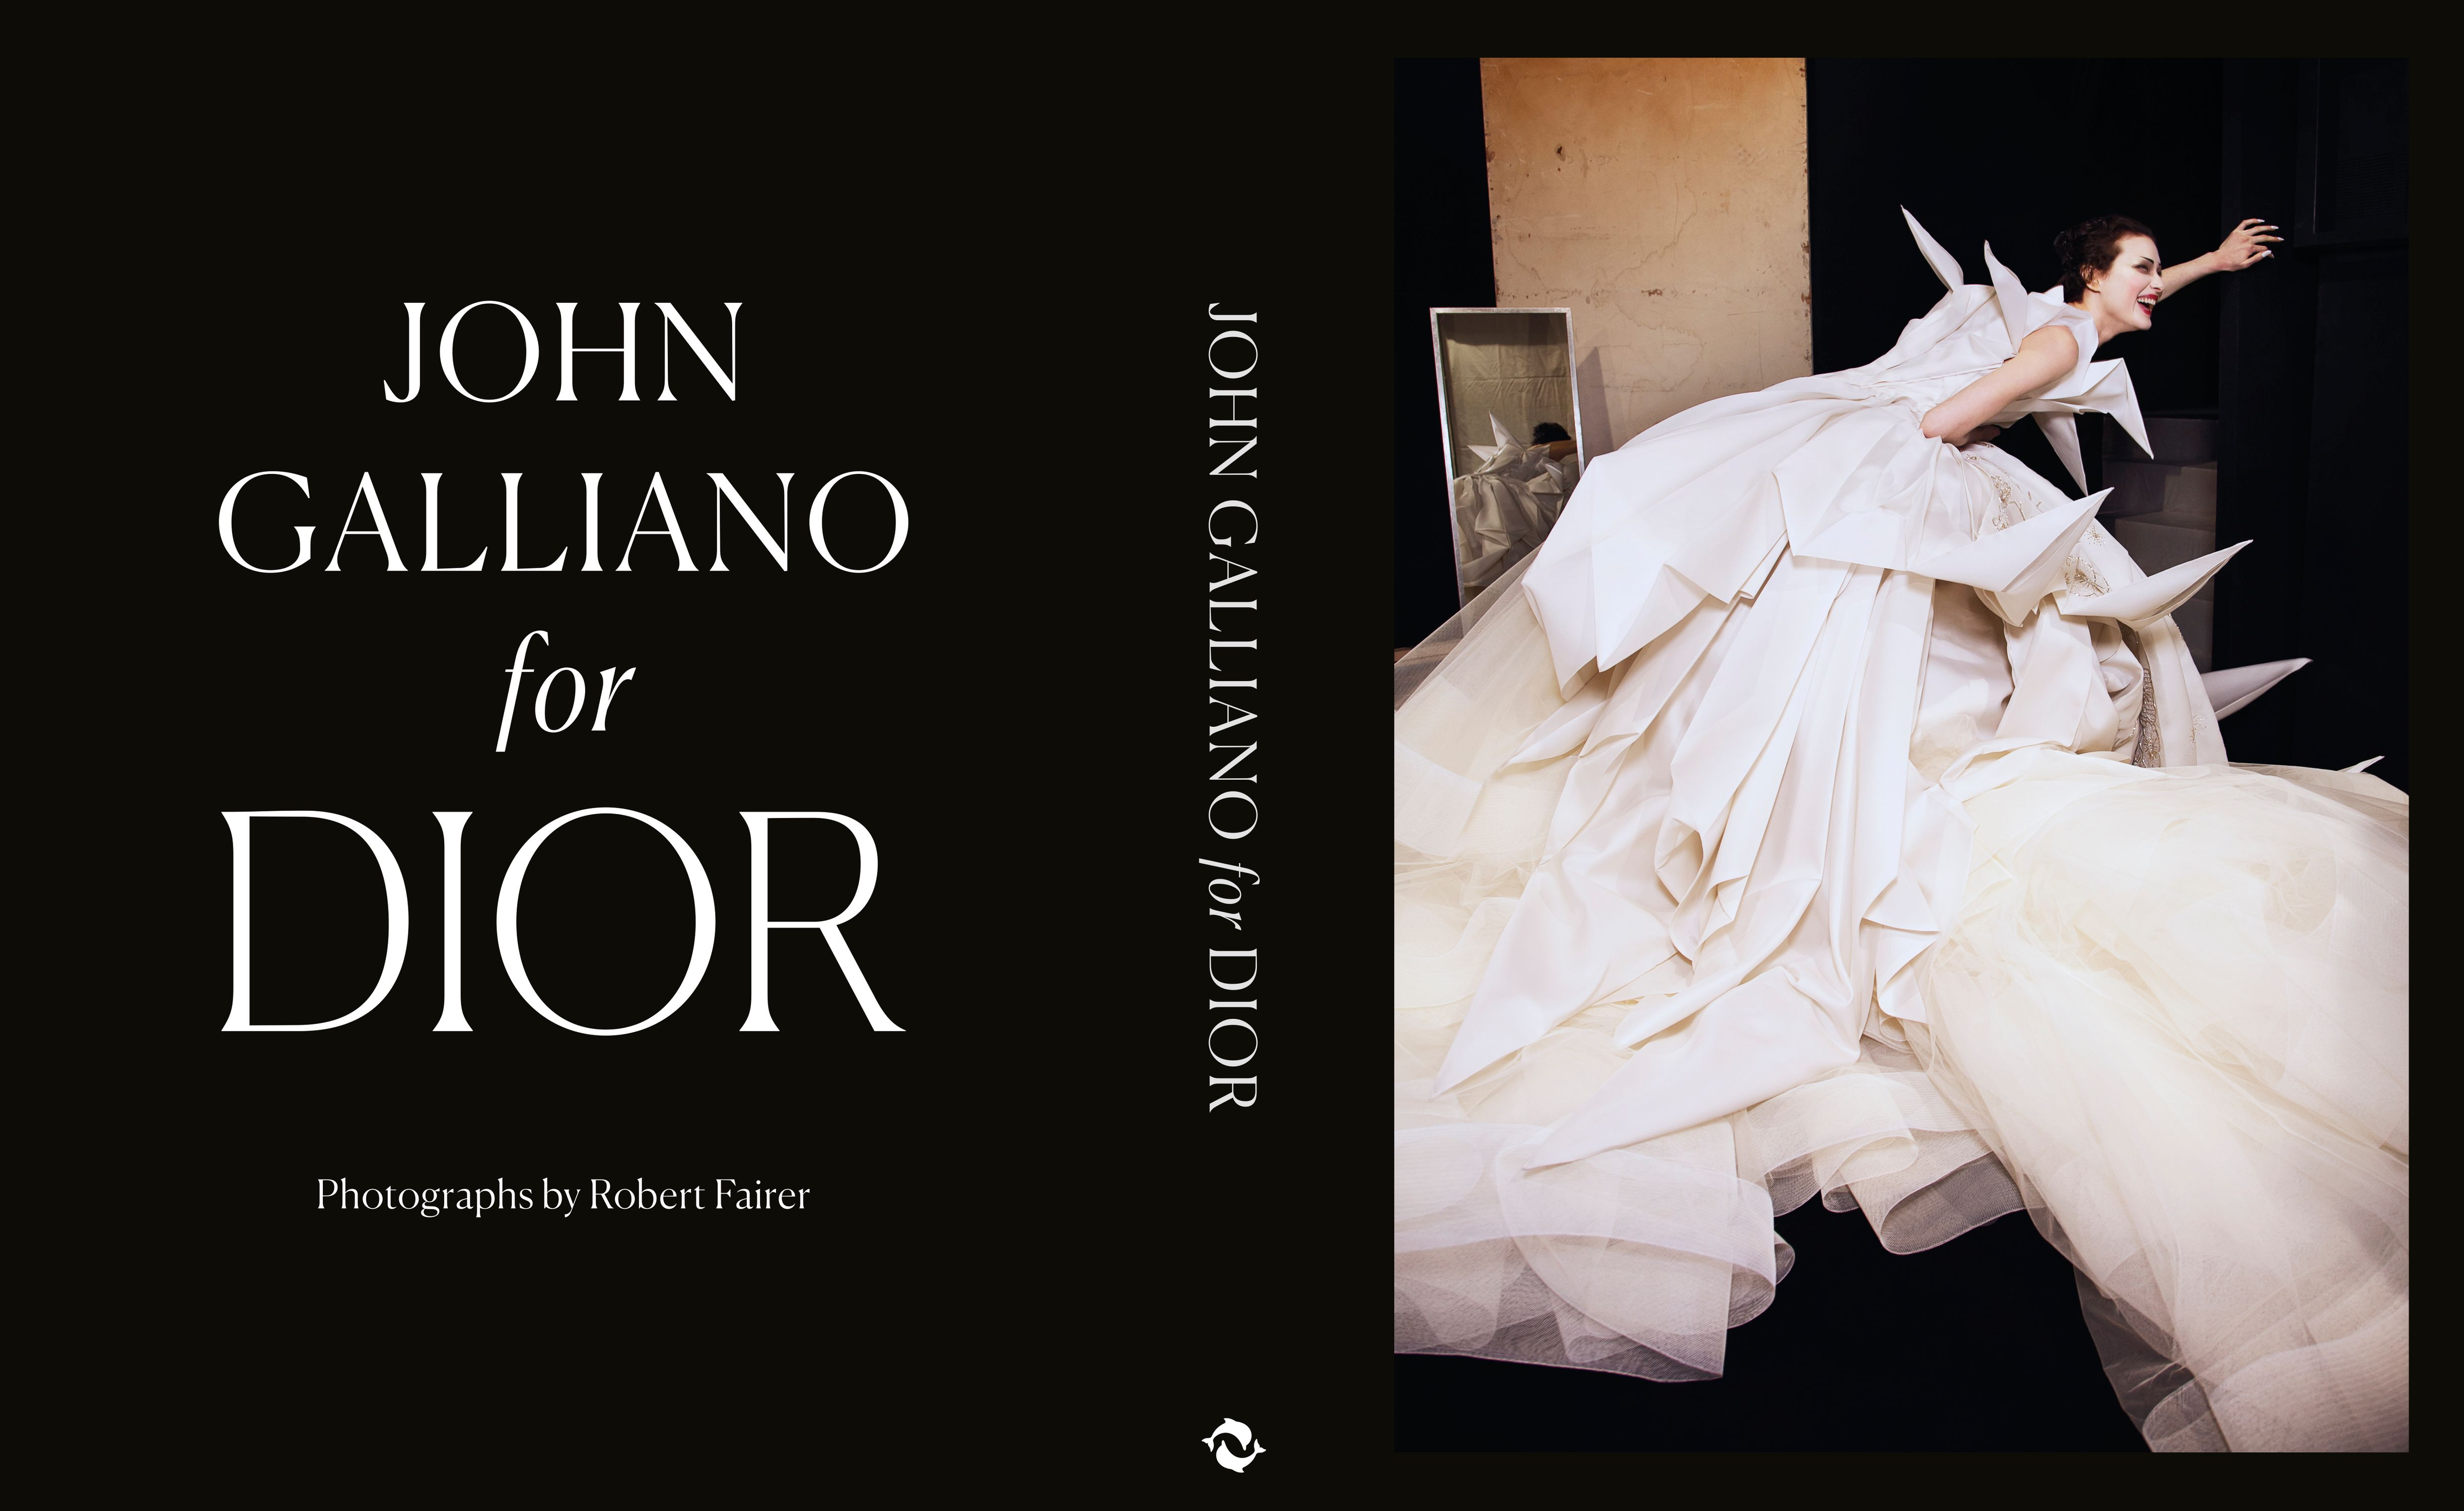 john galliano for dior_slipcase_revised.jpg